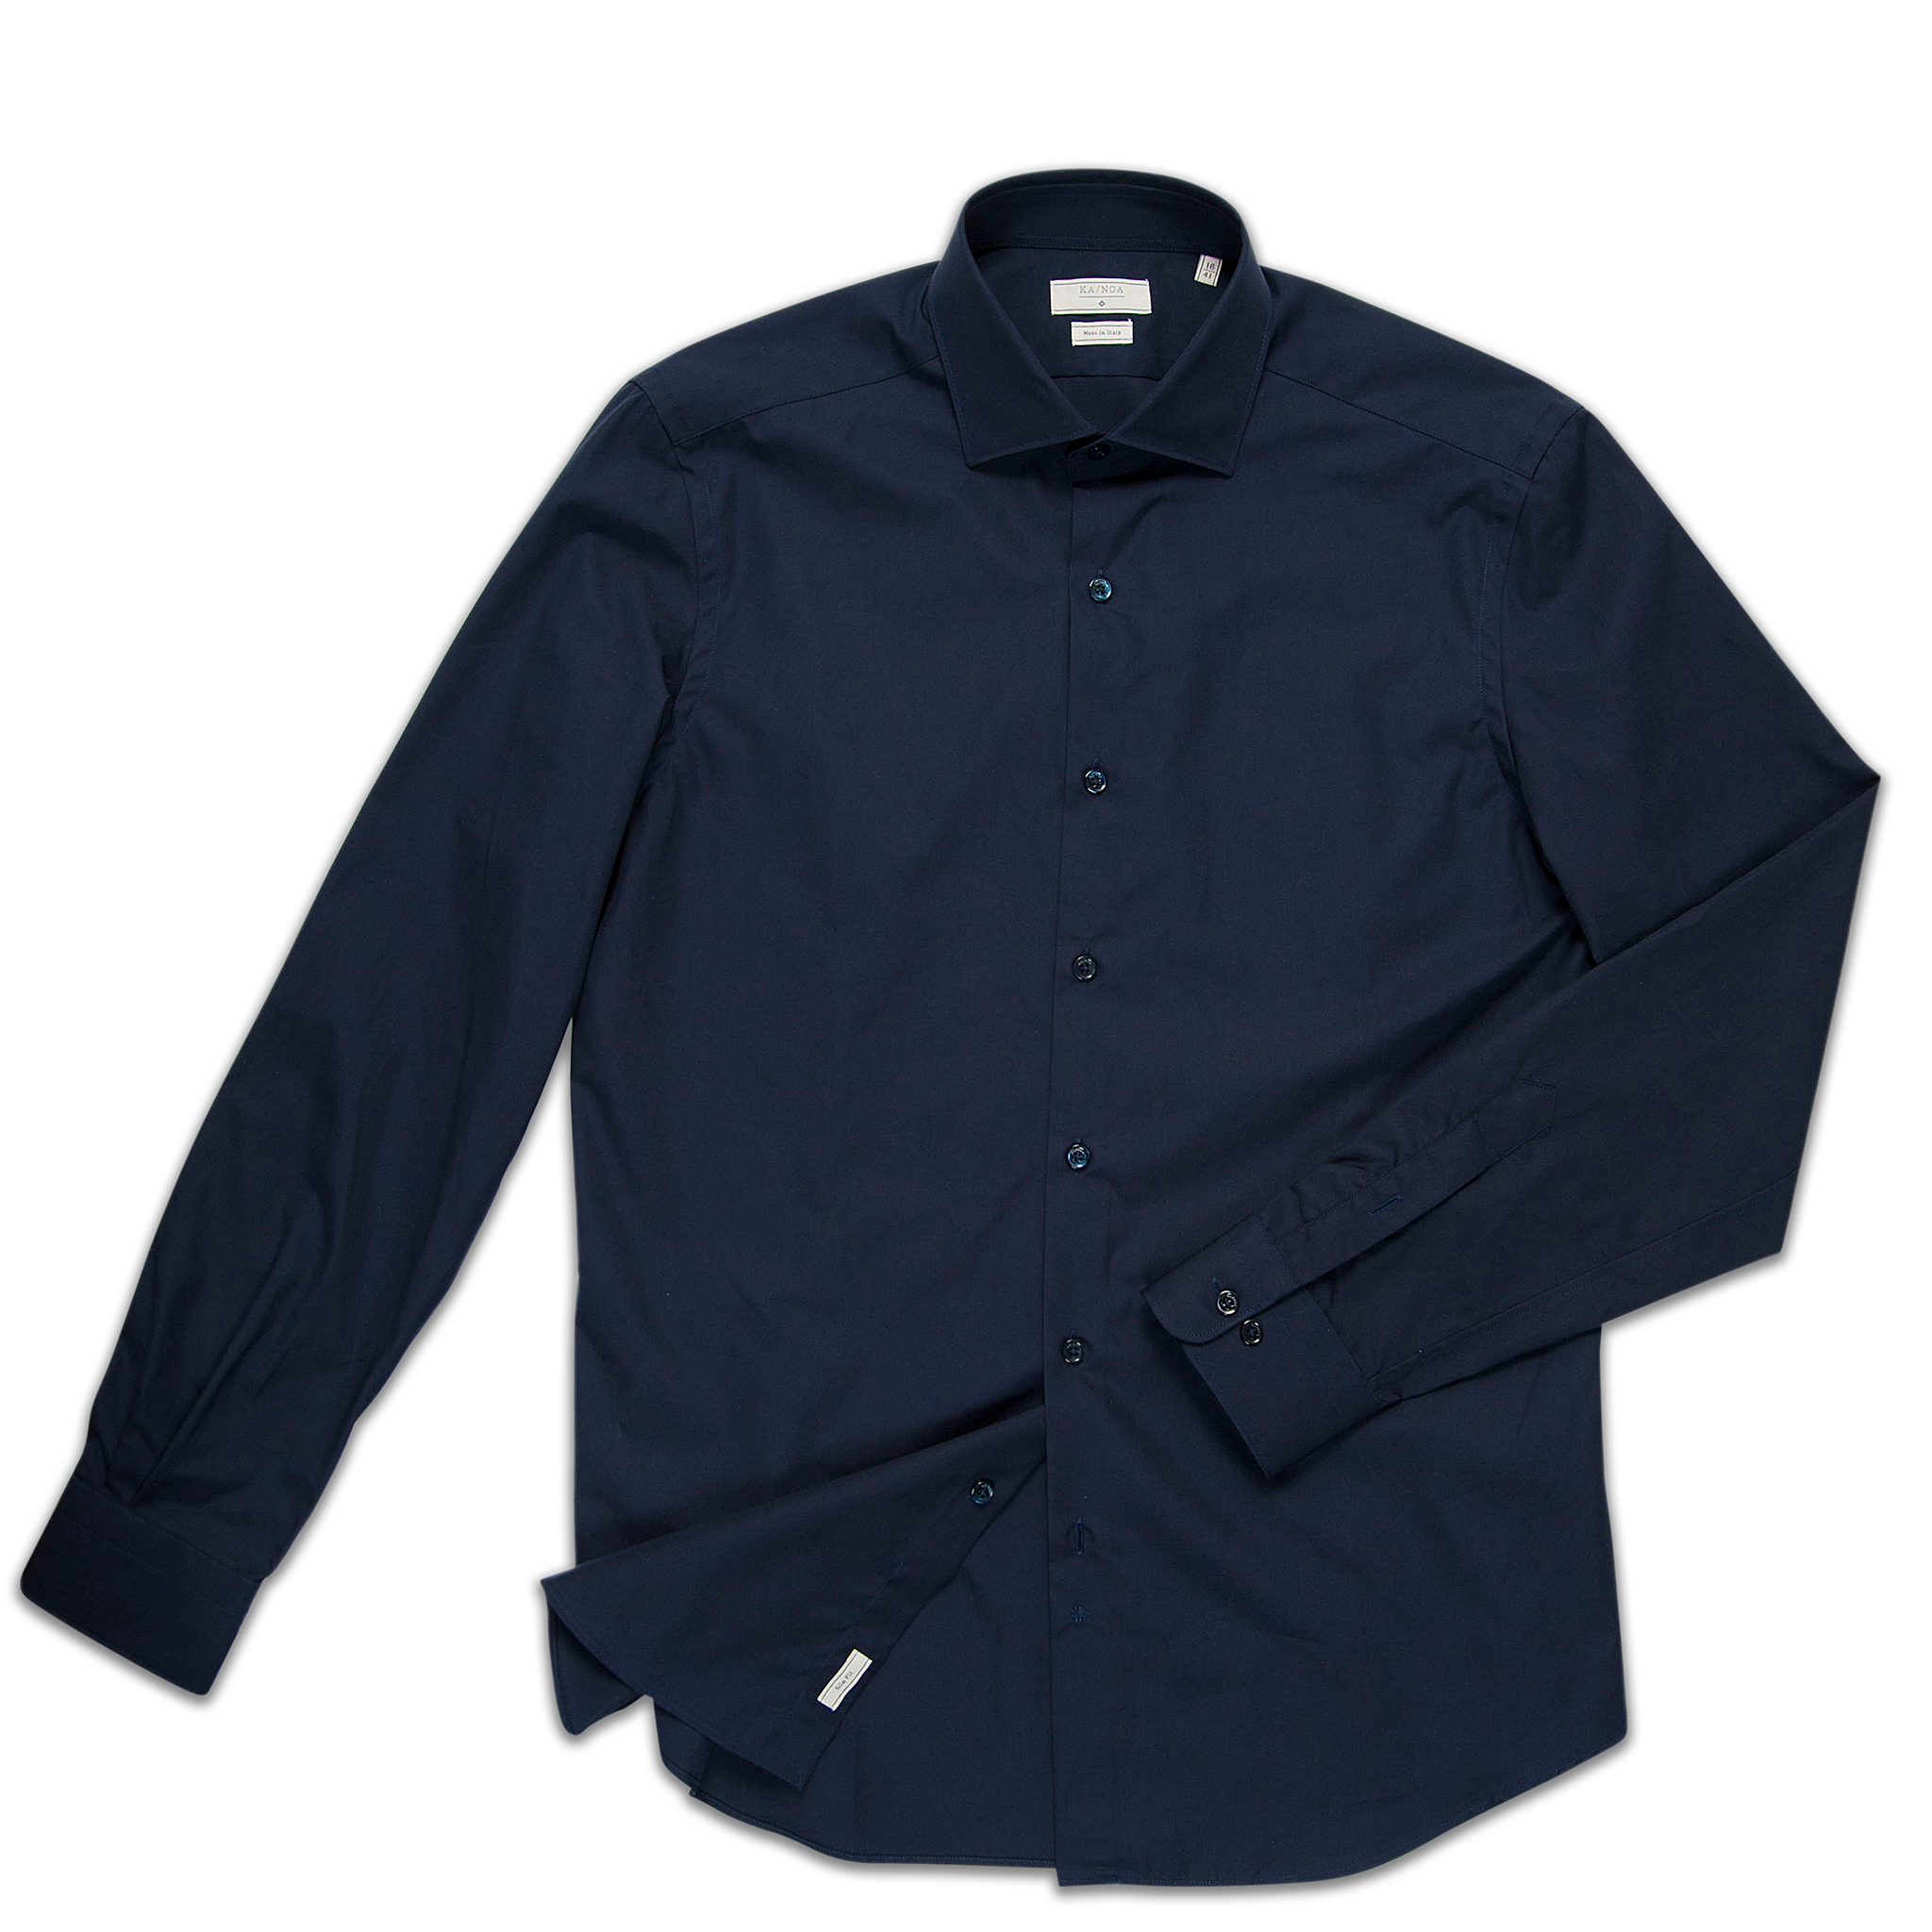 Clamenc shirt cotton popeline (dark blue)